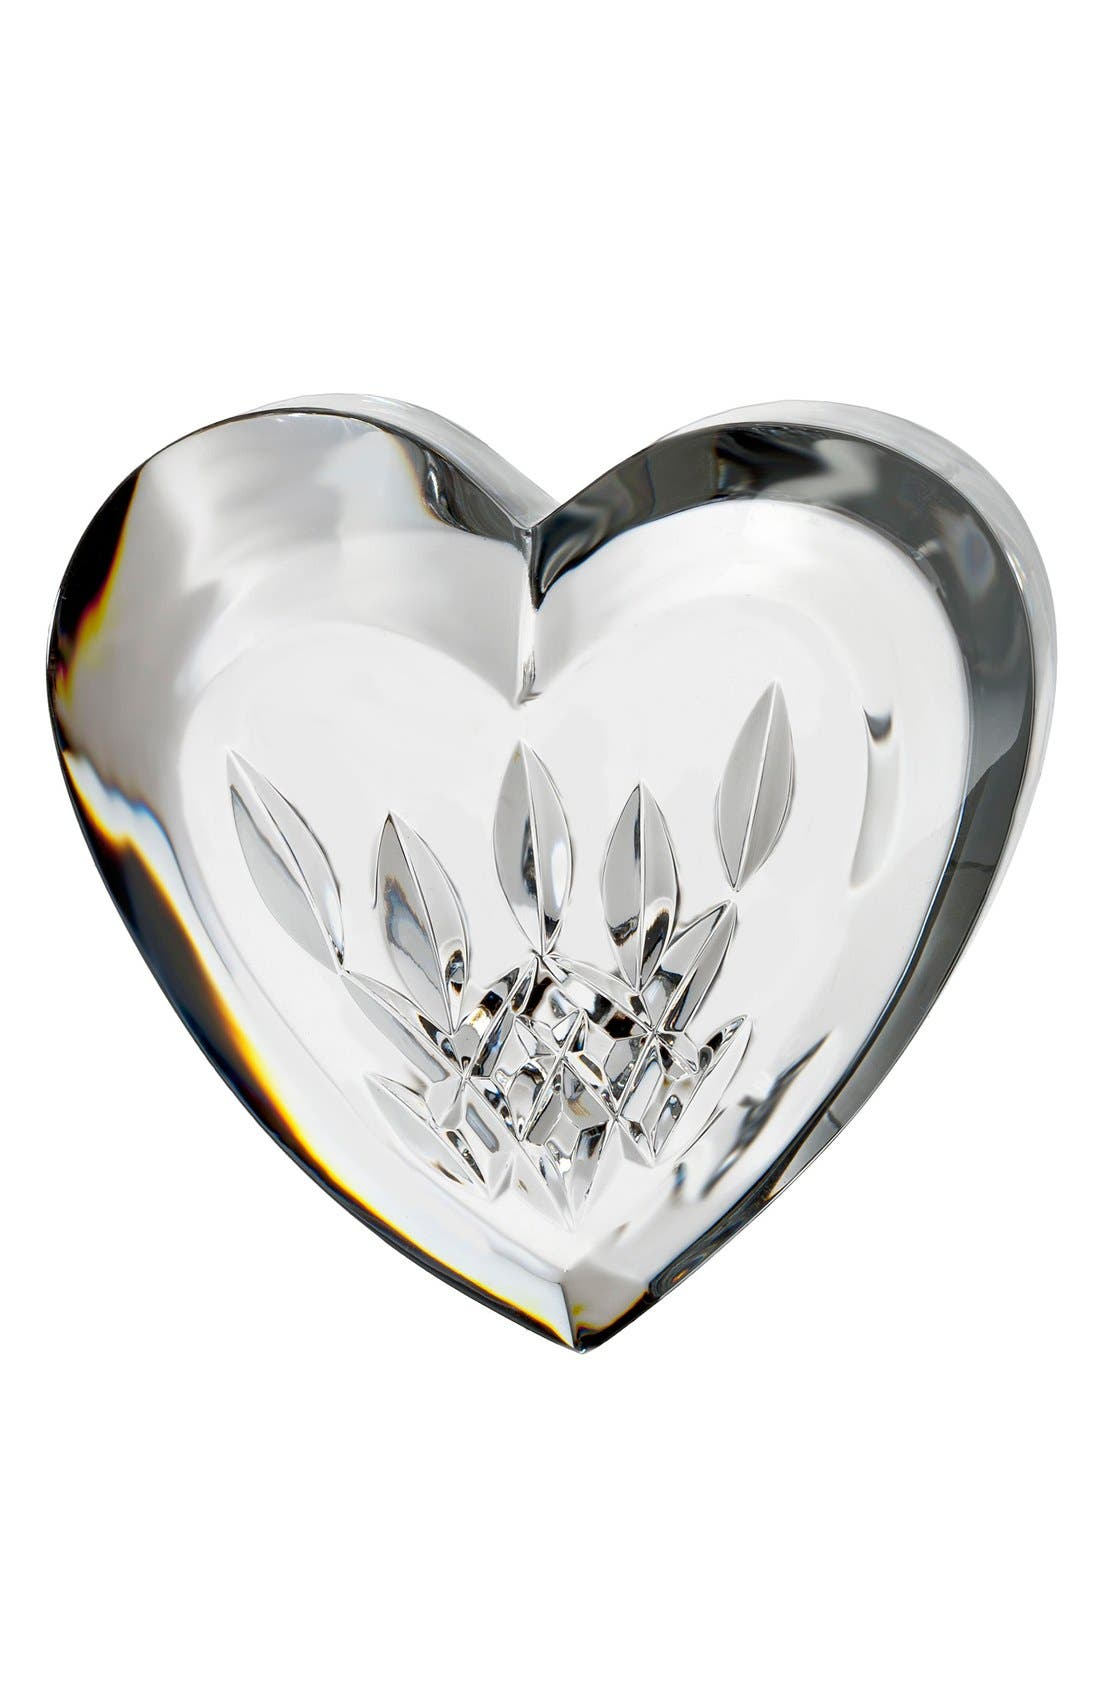 Alternate Image 1 Selected - Waterford 'Lismore' Heart Lead Crystal Paperweight